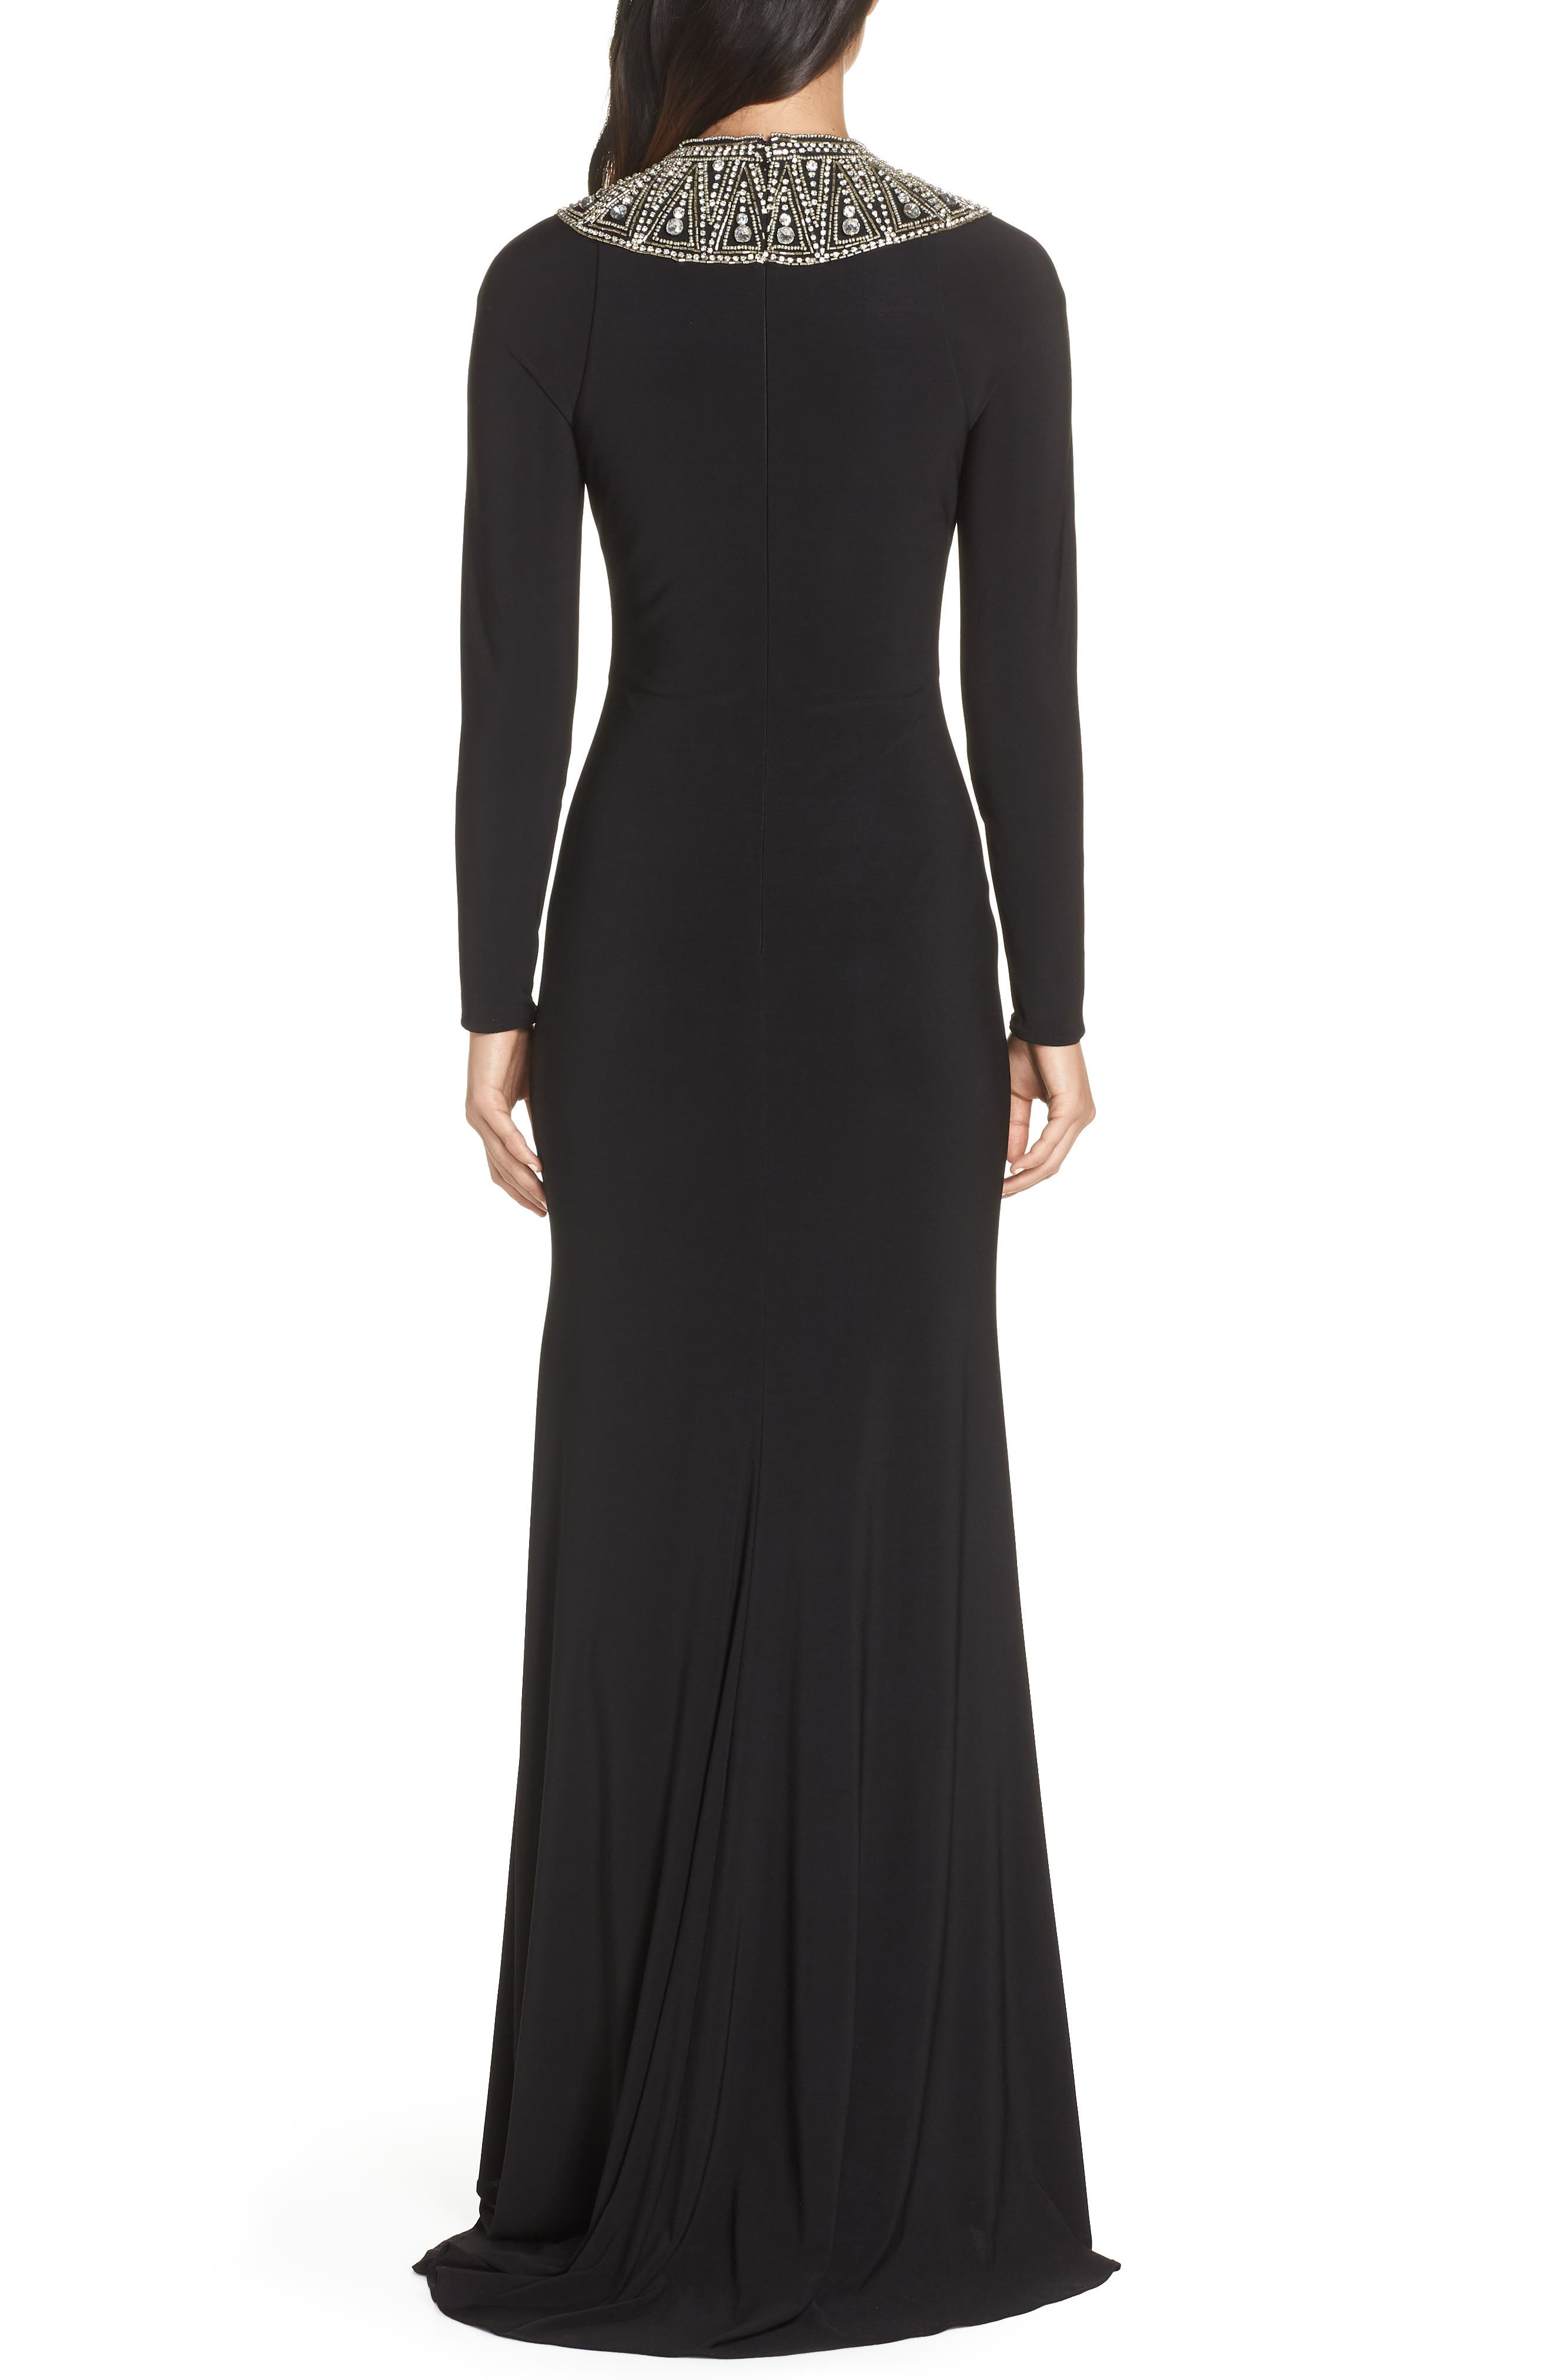 IEENA FOR MAC DUGGAL,                             Mac Duggal Beaded Collar Jersey Gown,                             Alternate thumbnail 2, color,                             BLACK